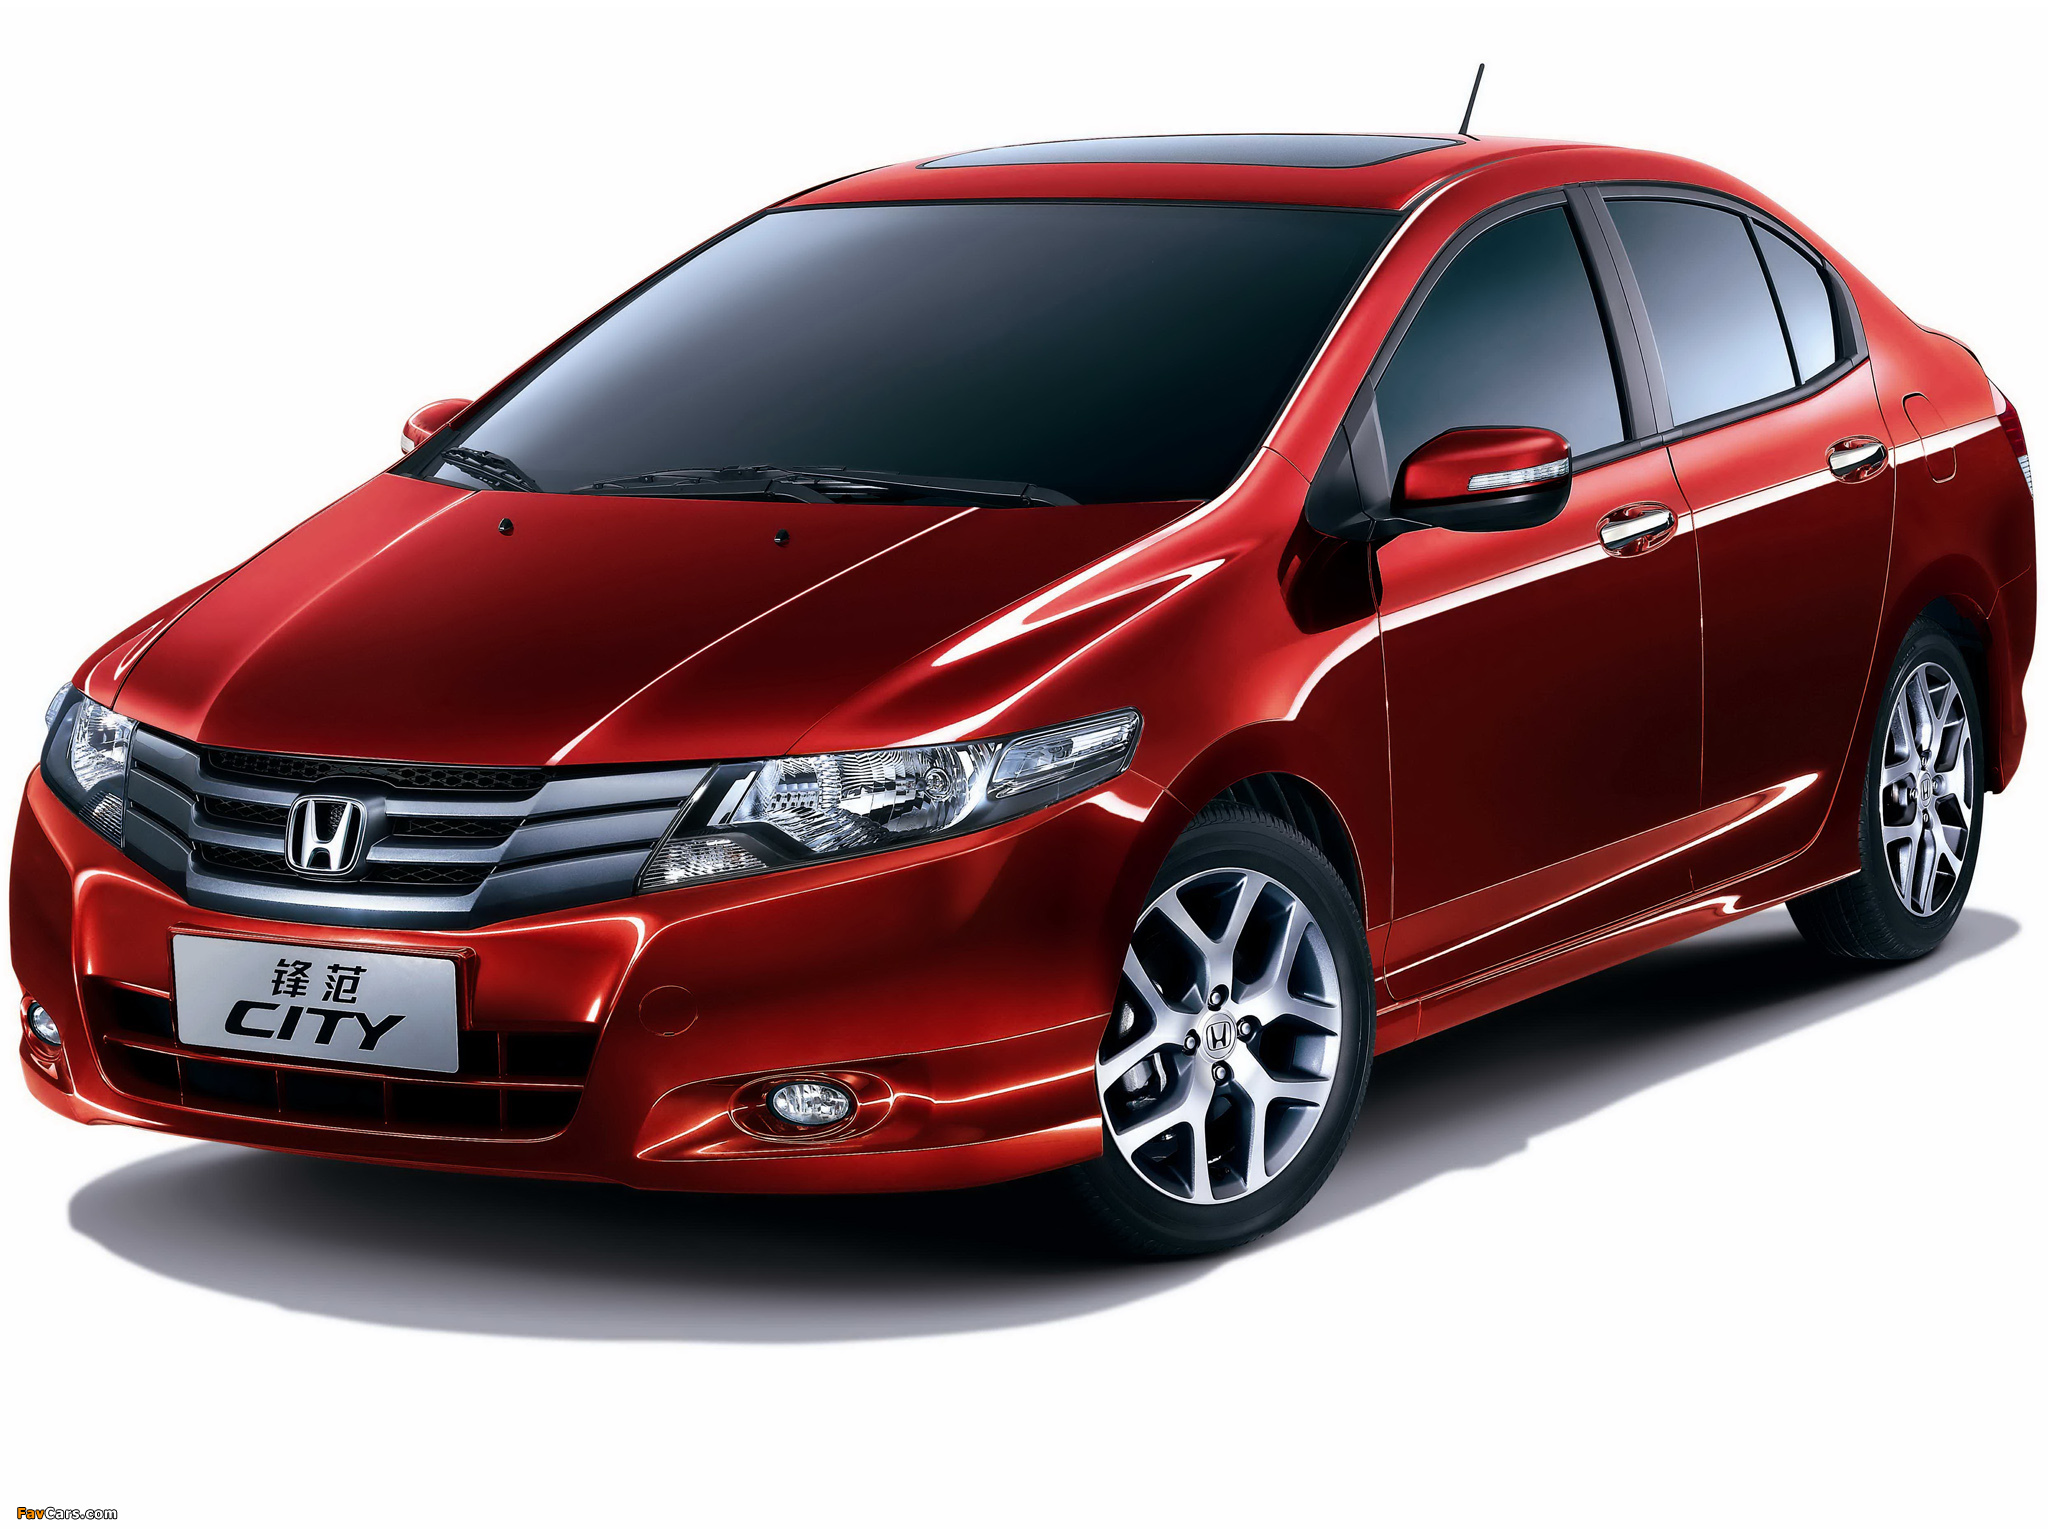 Honda City HD Images